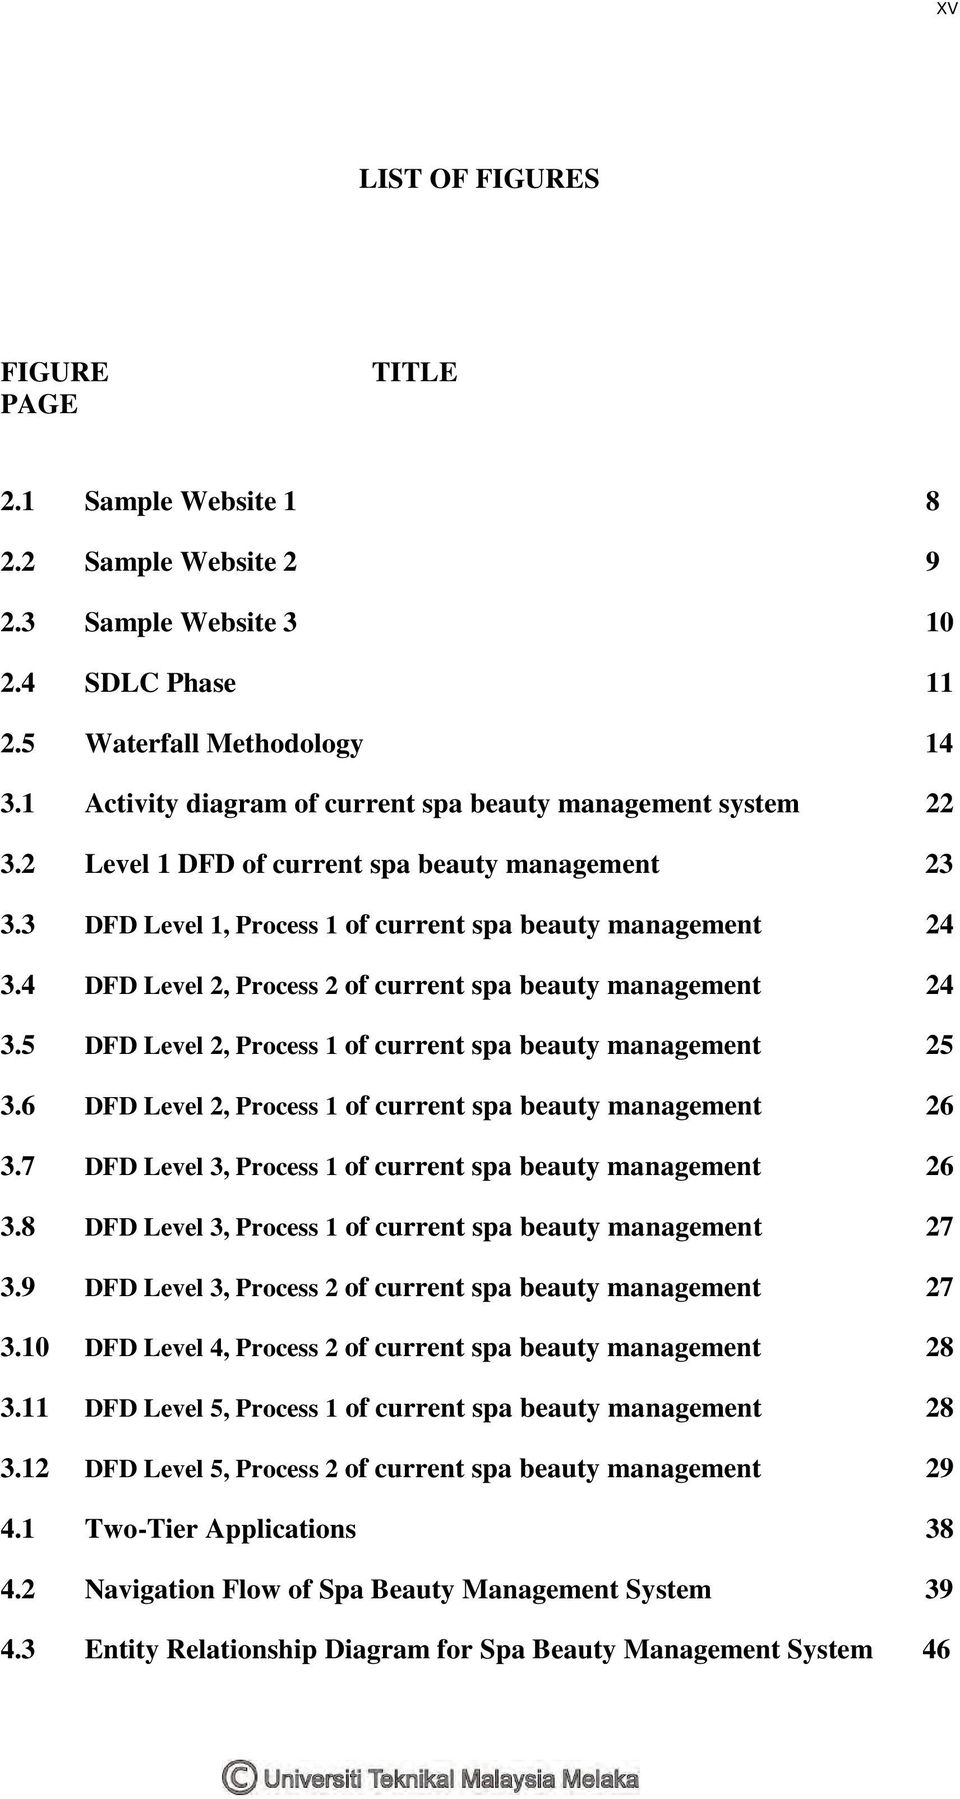 4 DFD Level 2, Process 2 of current spa beauty management 24 3.5 DFD Level 2, Process 1 of current spa beauty management 25 3.6 DFD Level 2, Process 1 of current spa beauty management 26 3.